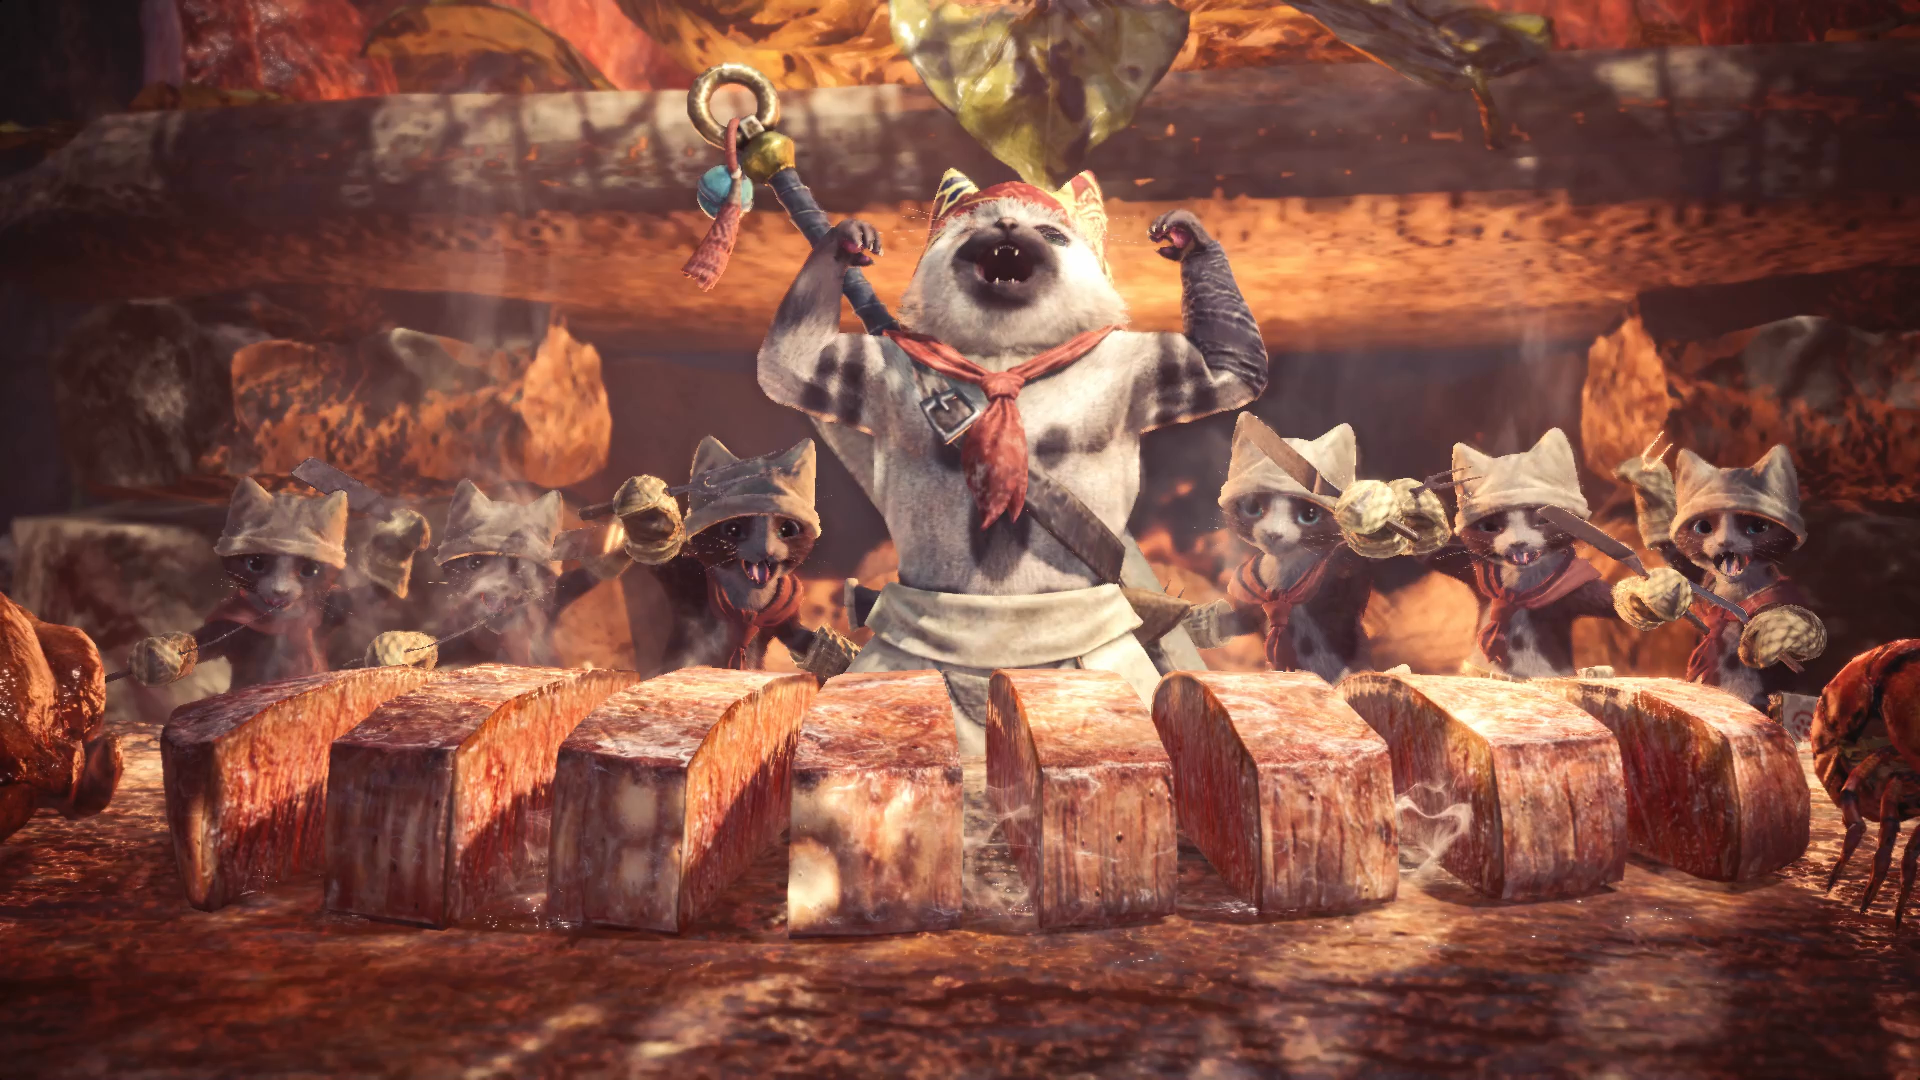 Monster Hunter World Guide - All the Essential Tips for Playing